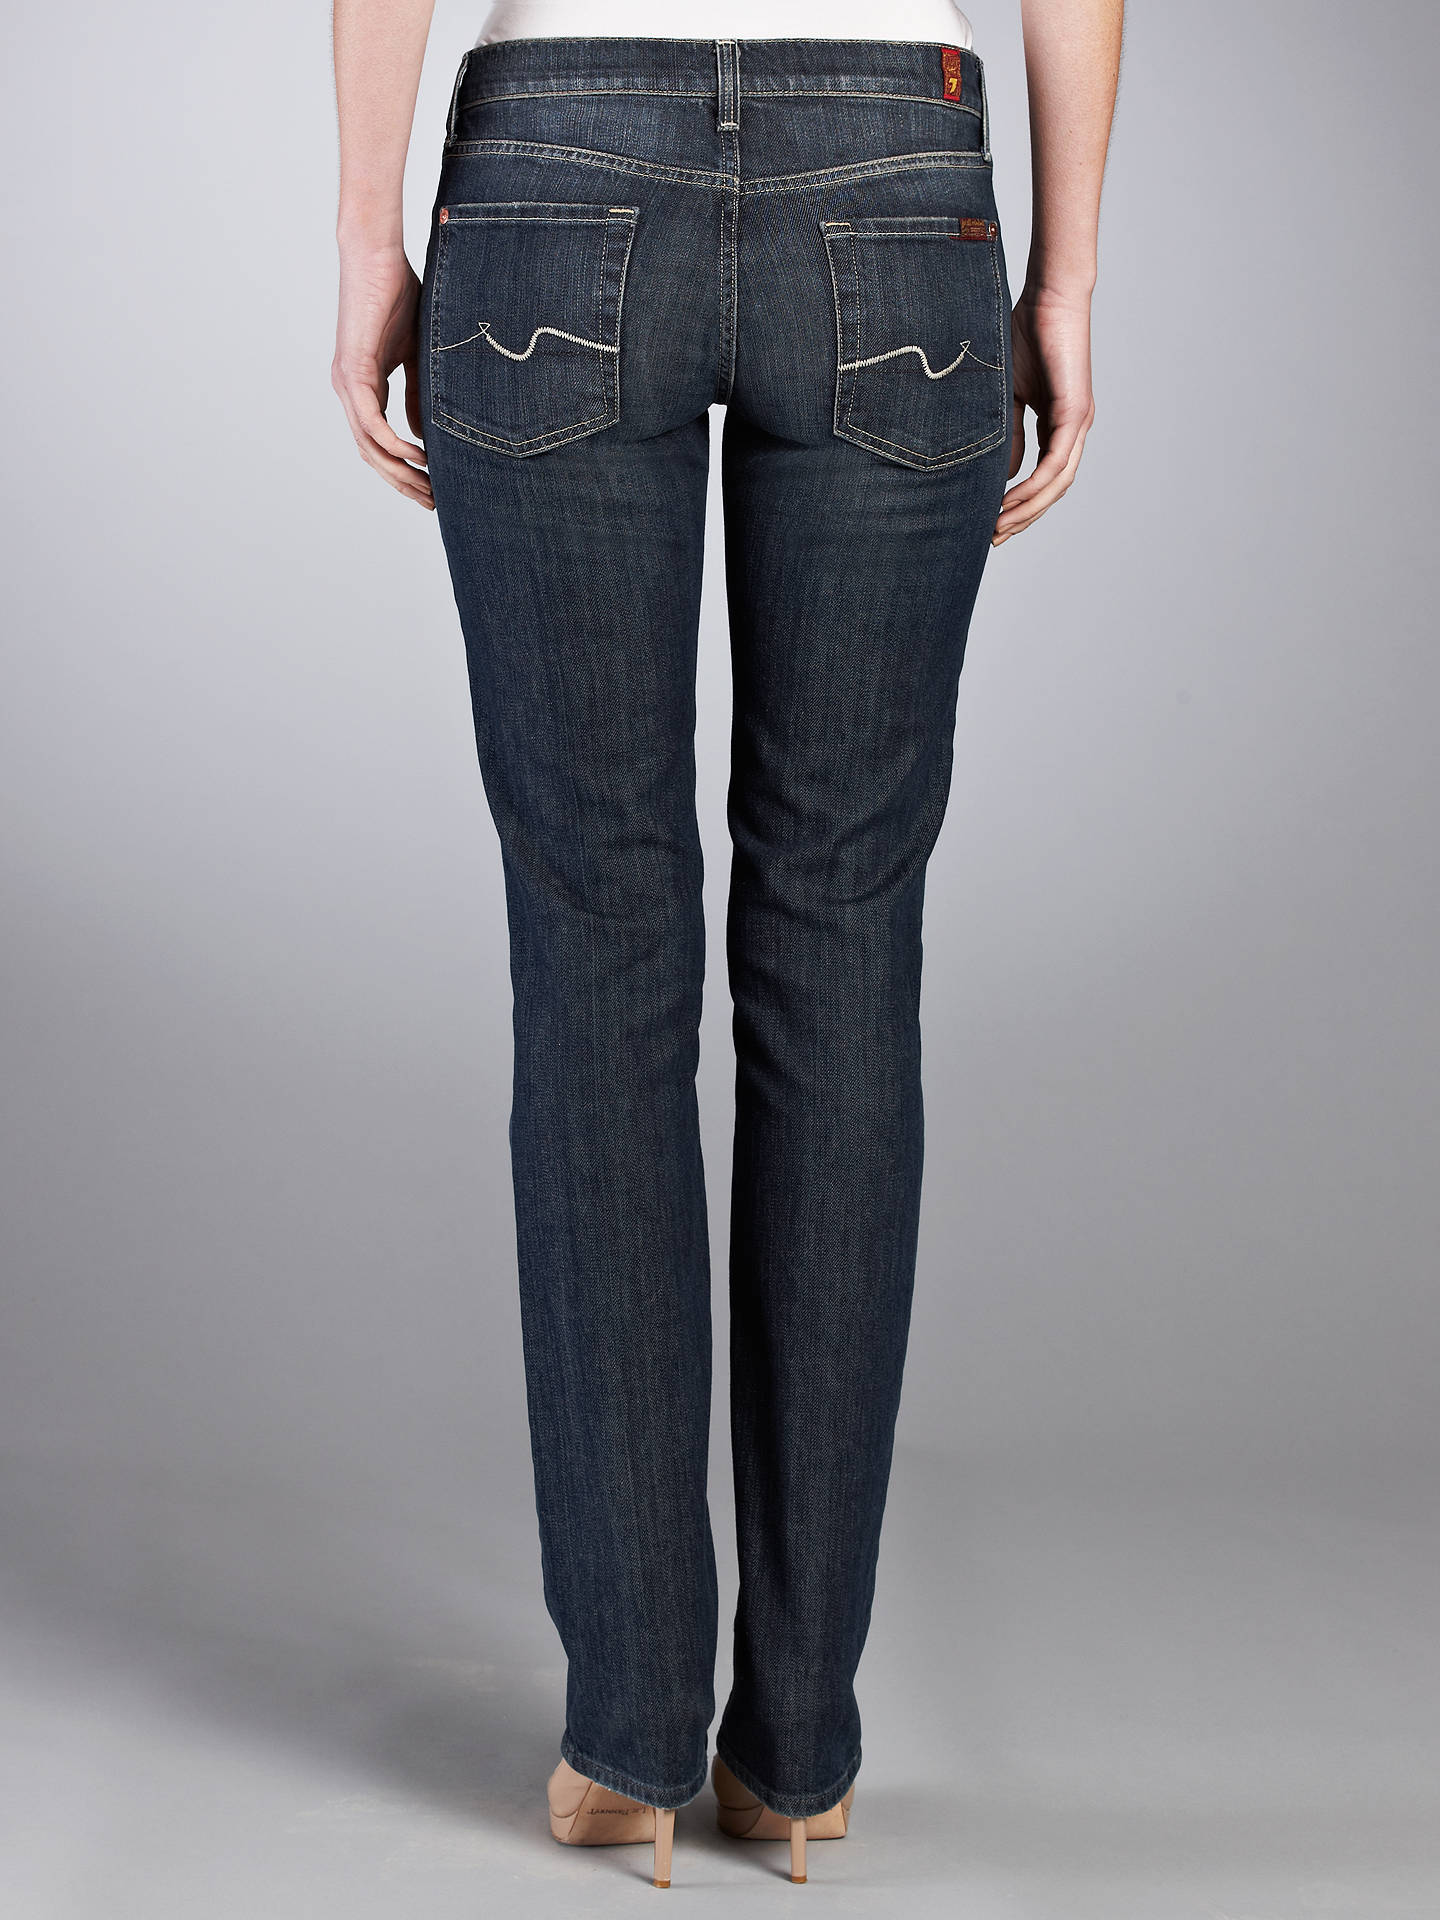 Buy7 For All Mankind Straight Leg Jeans New York Dark W25 L33 Online